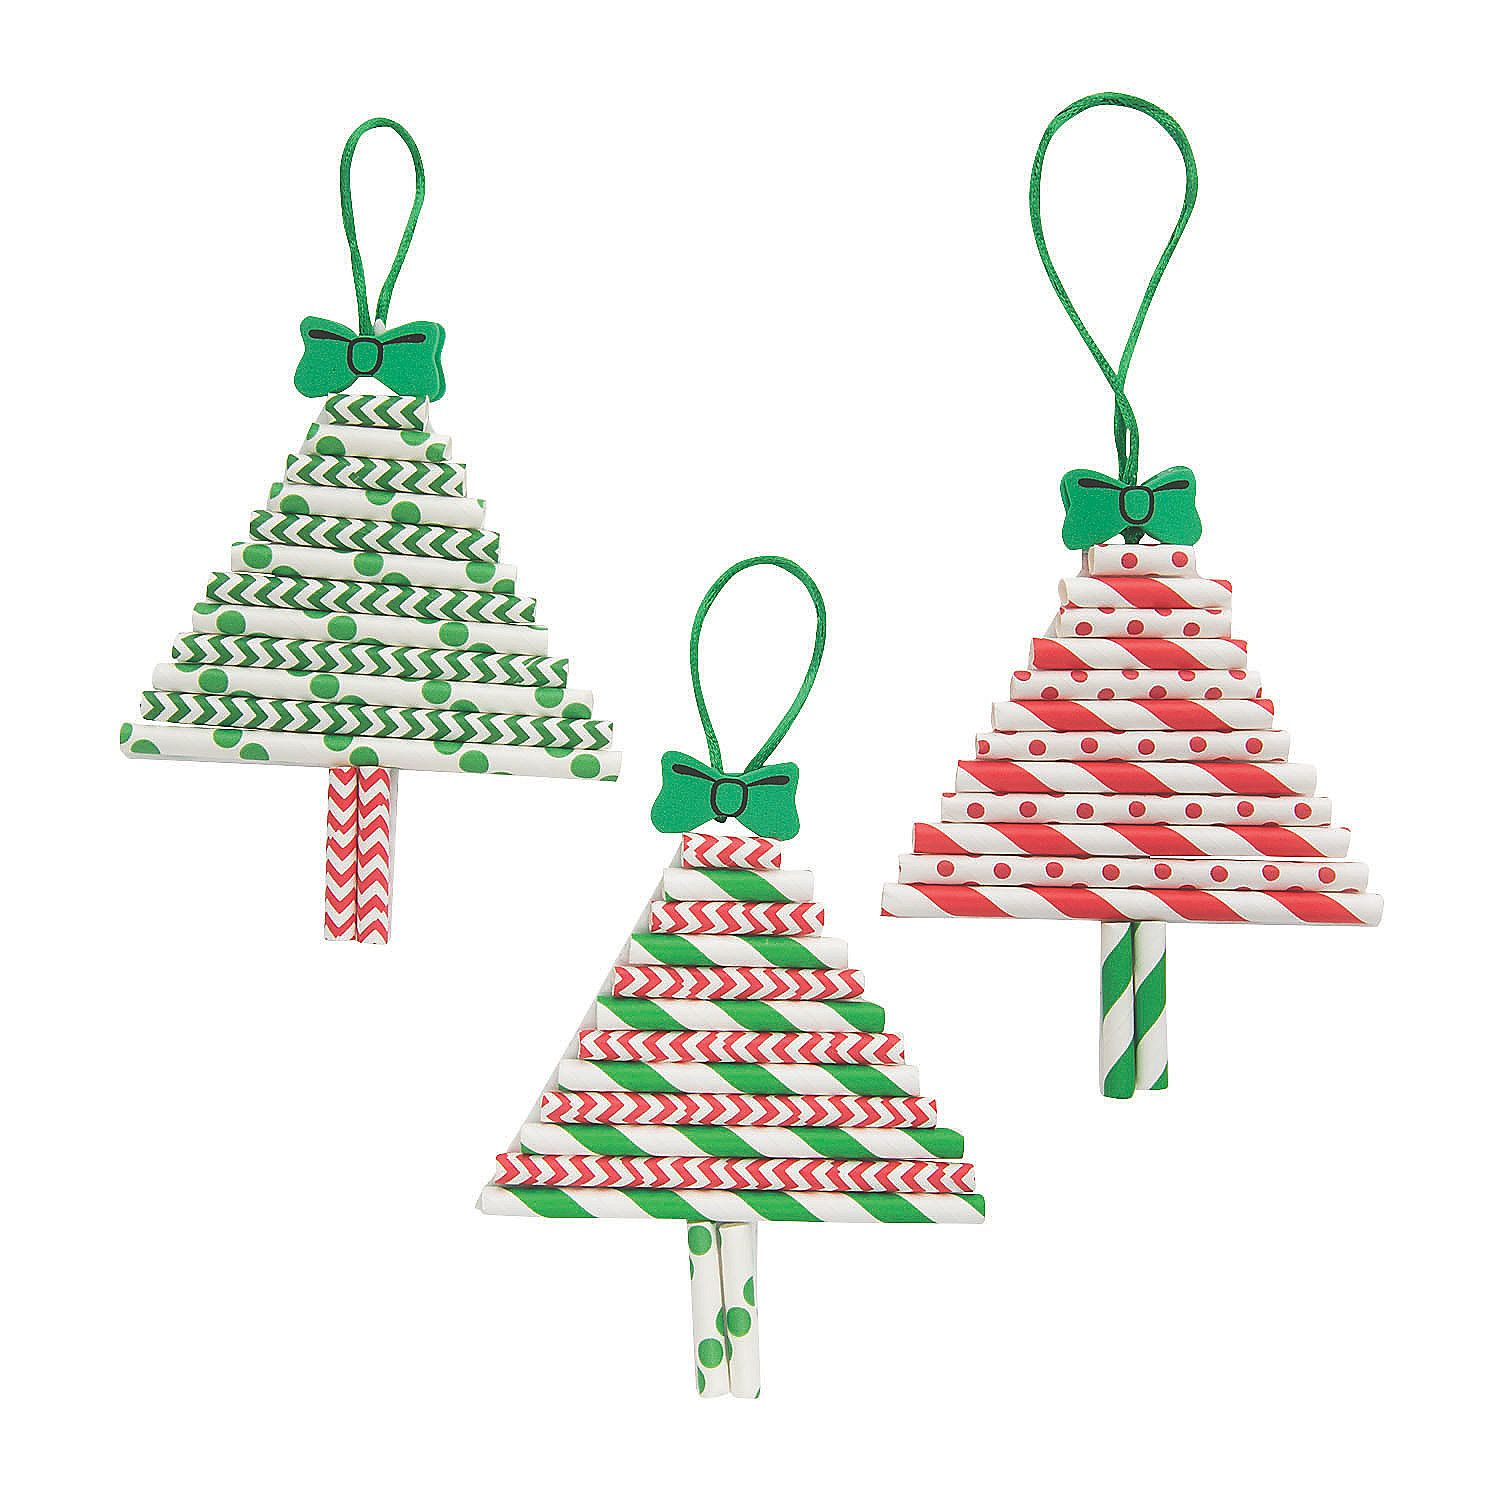 Paper Straw Christmas Tree Ornament Craft Kit Oriental Trading In 2020 Christmas Tree Ornament Crafts Christmas Ornament Crafts Ornament Crafts